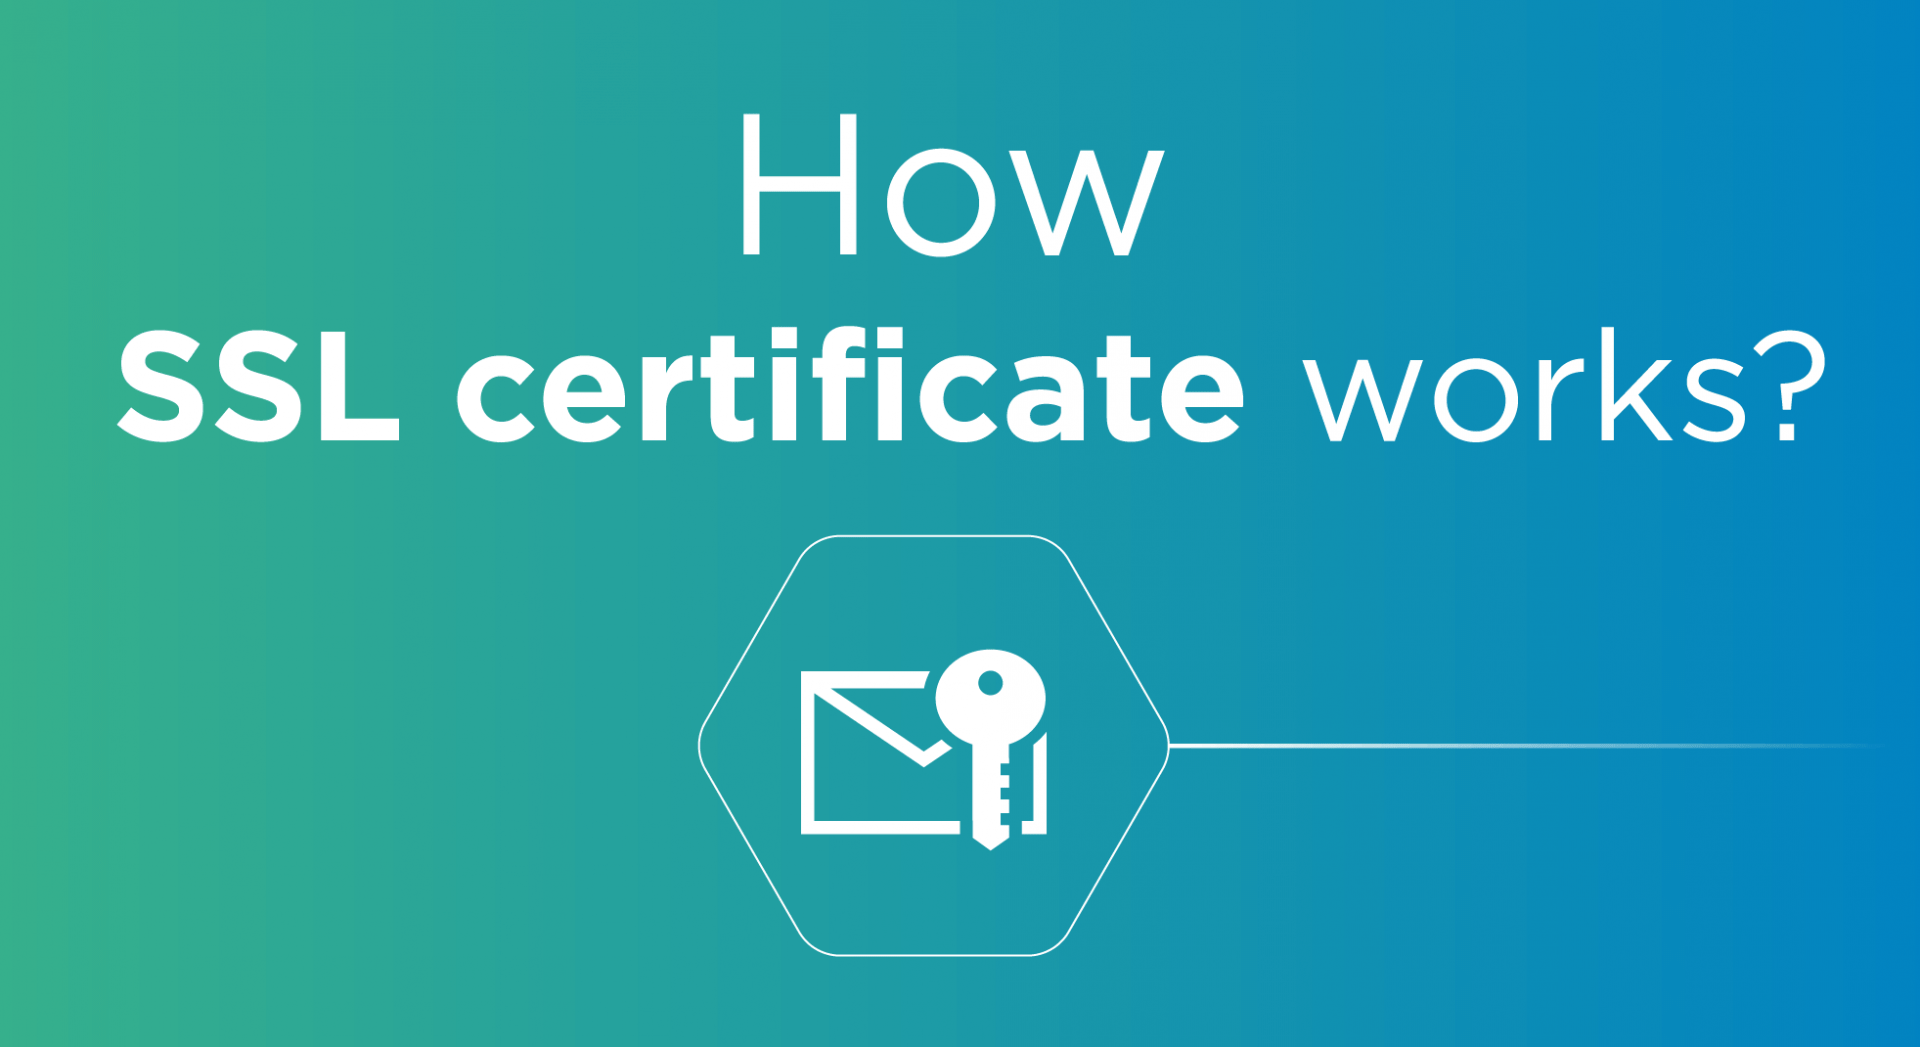 How SSL Certificates Work? 1. A browser or server attempts